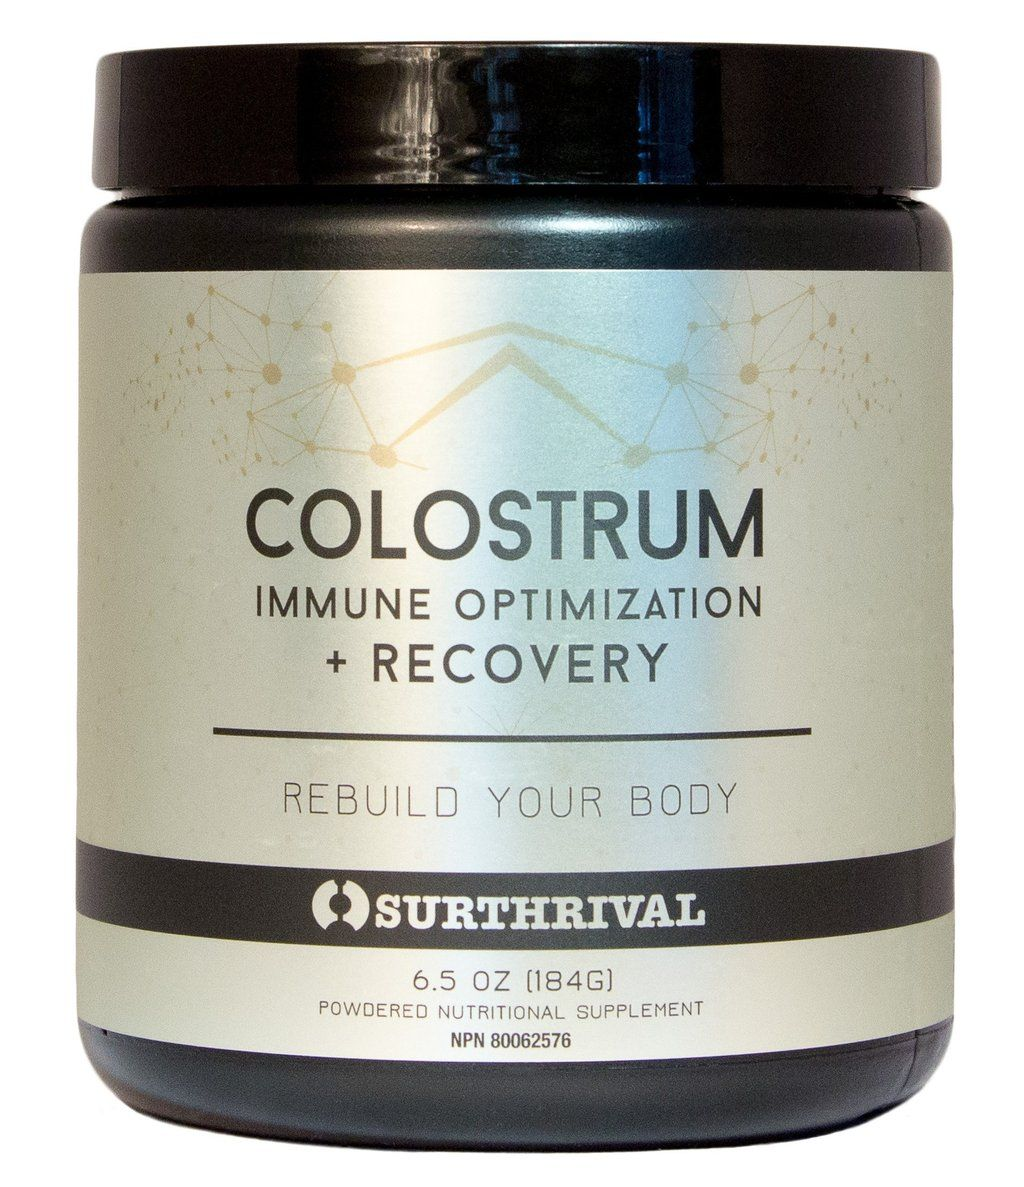 Colostrum (6.5oz, 184g) Blended drinks, Functional food